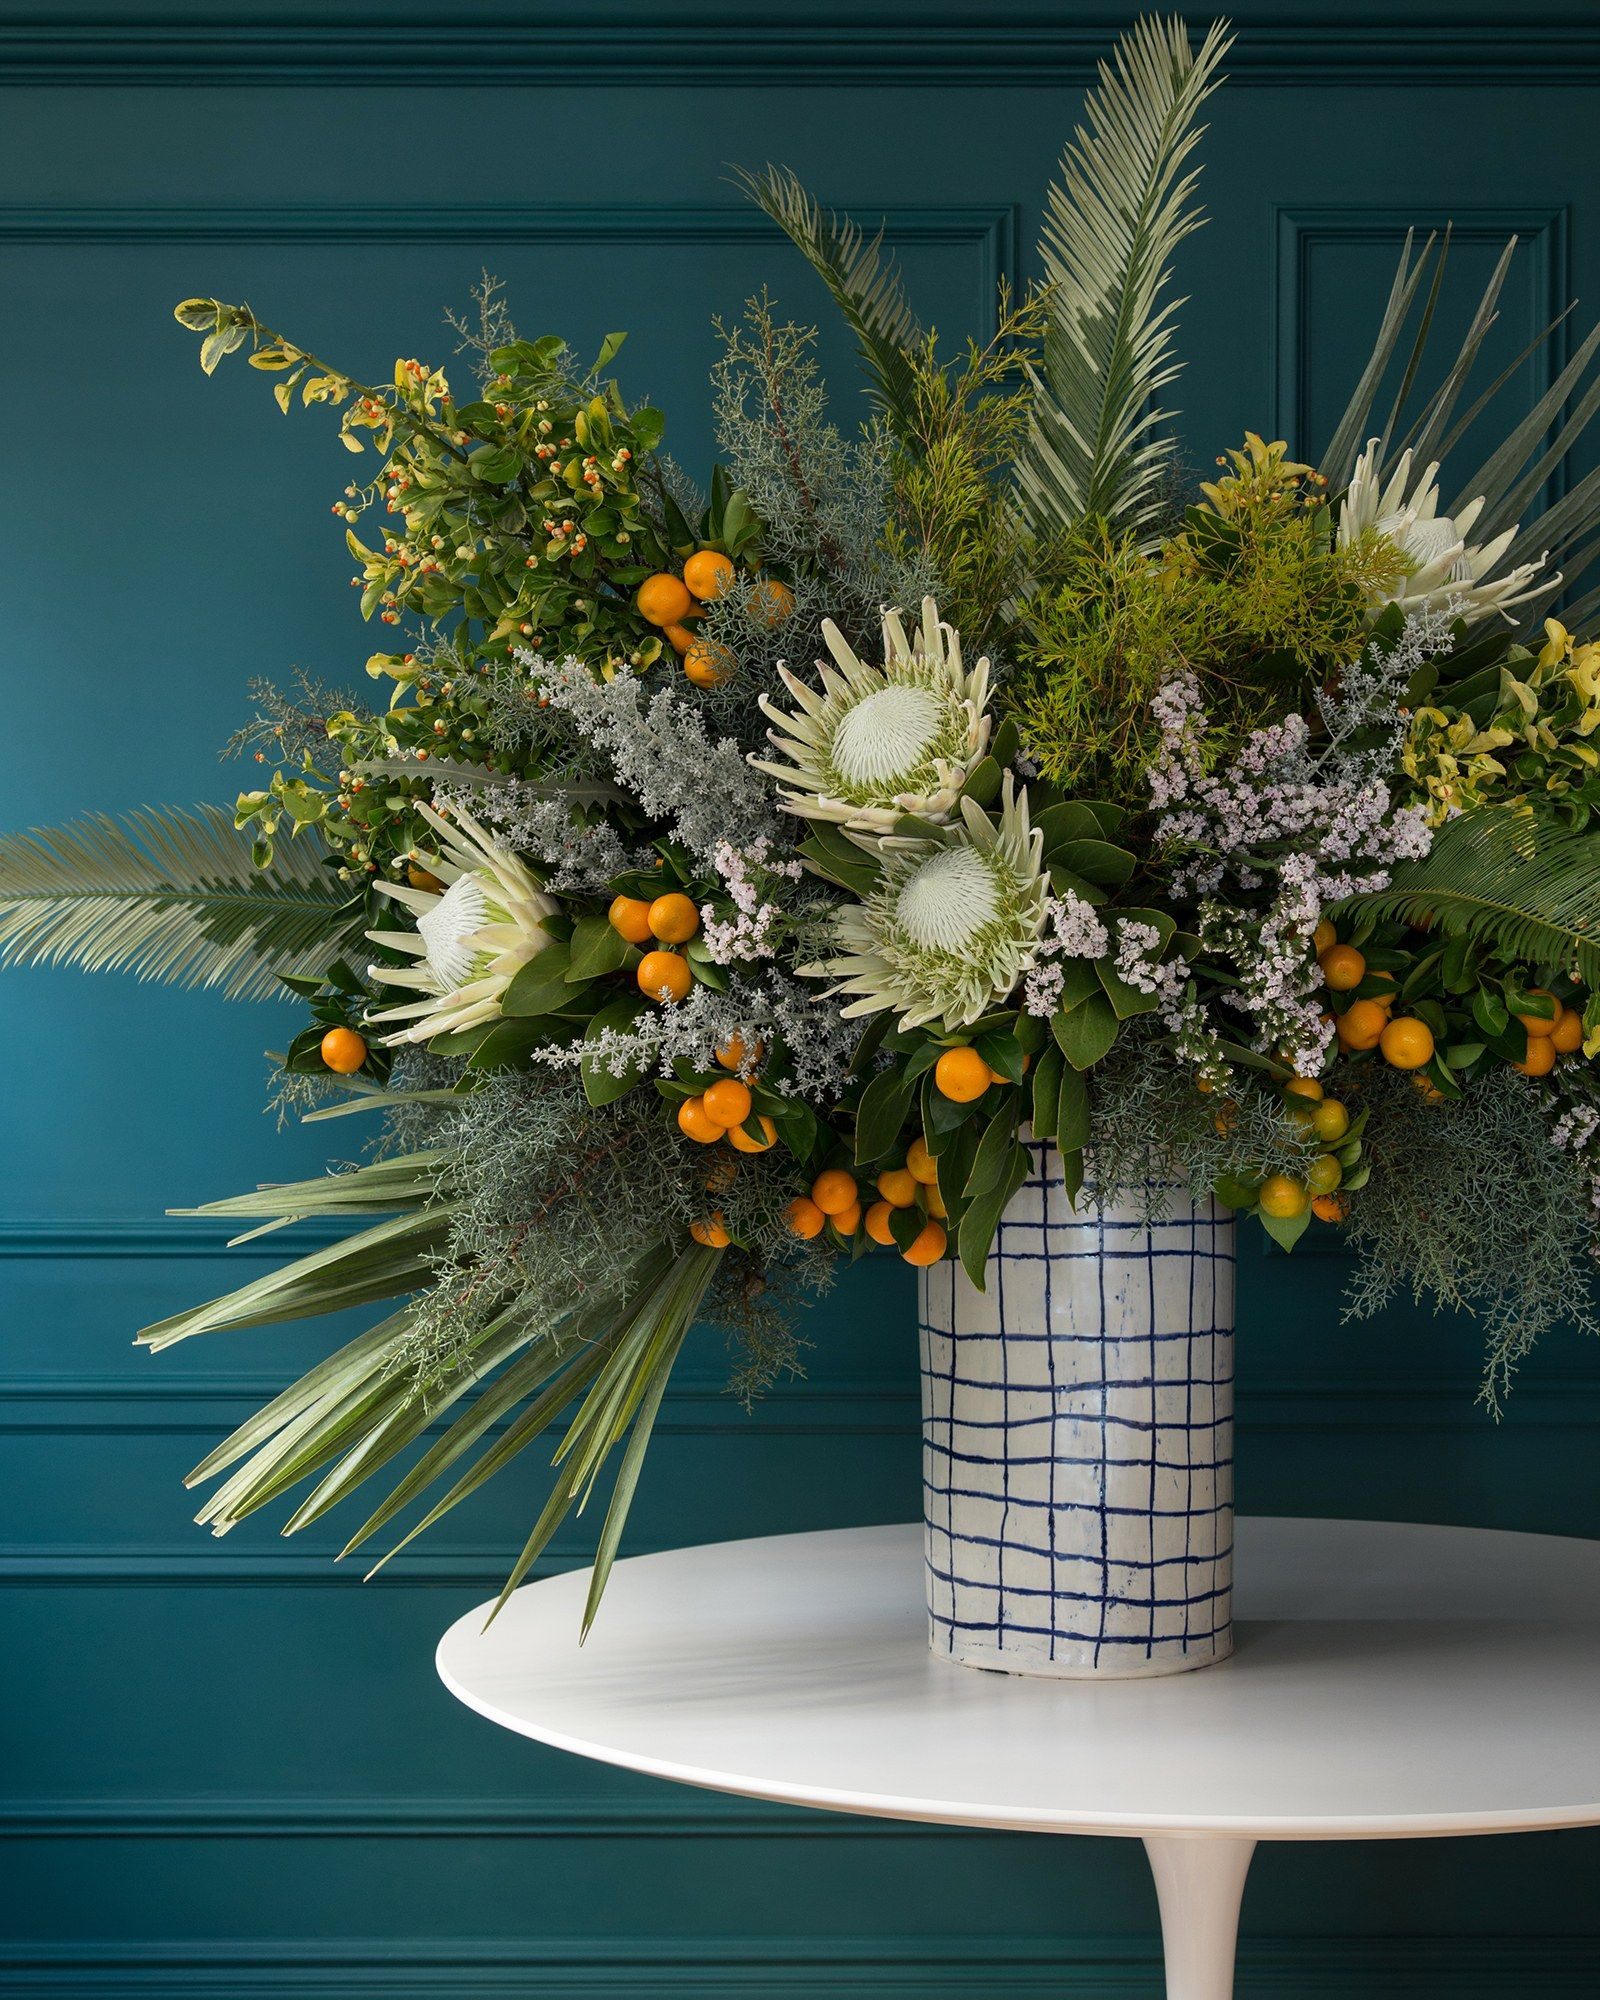 7 Unusual Winter Flower Arrangements And Vases That Are Perfect For The Holidays Winter Flower Arrangements Large Flower Arrangements Flower Vase Arrangements